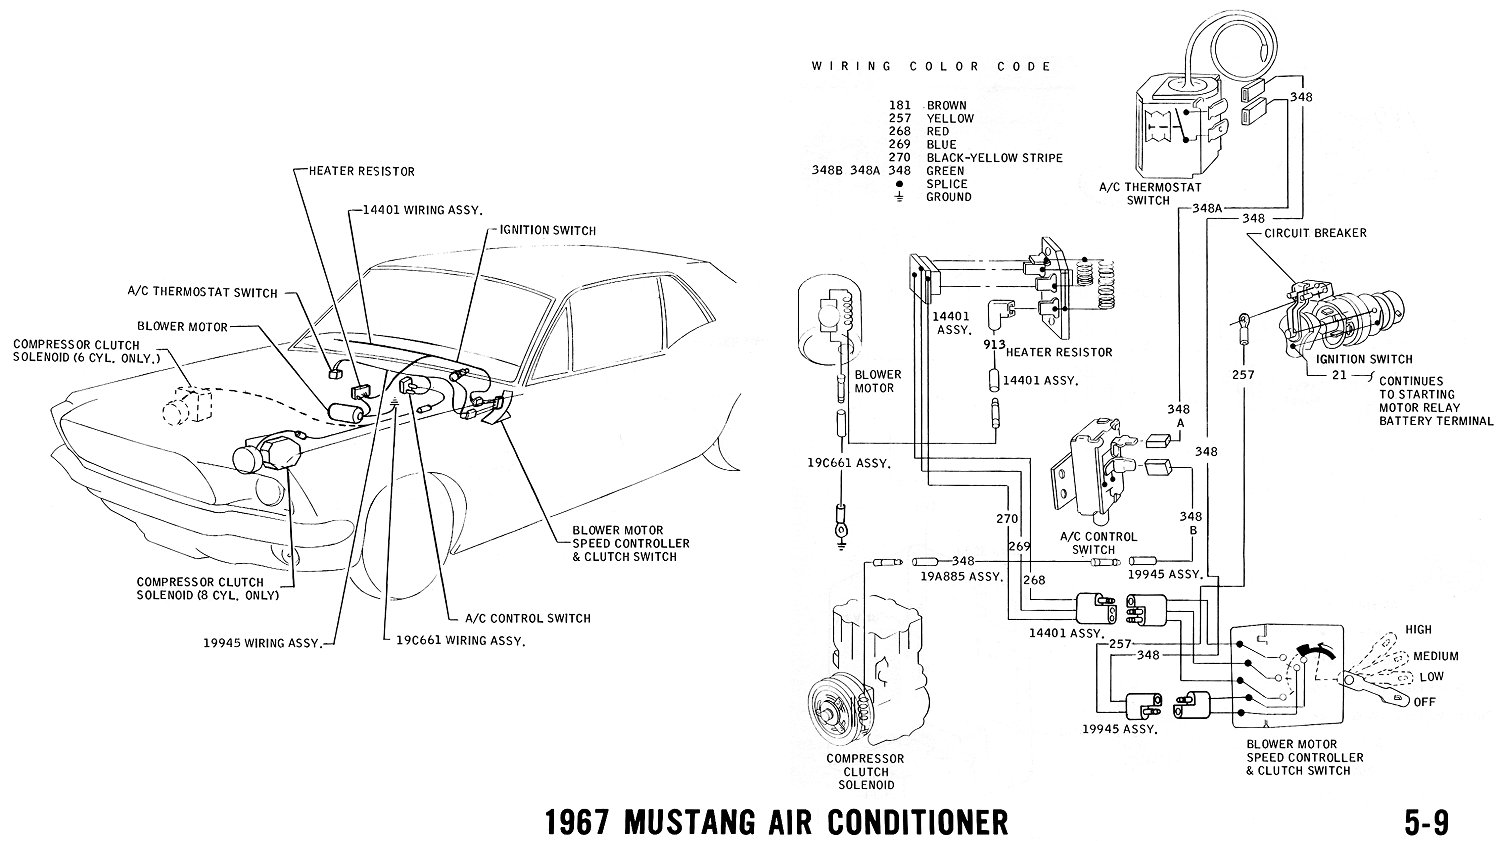 1967 Mustang Wiring And Vacuum Diagrams on ford wiring harness diagrams